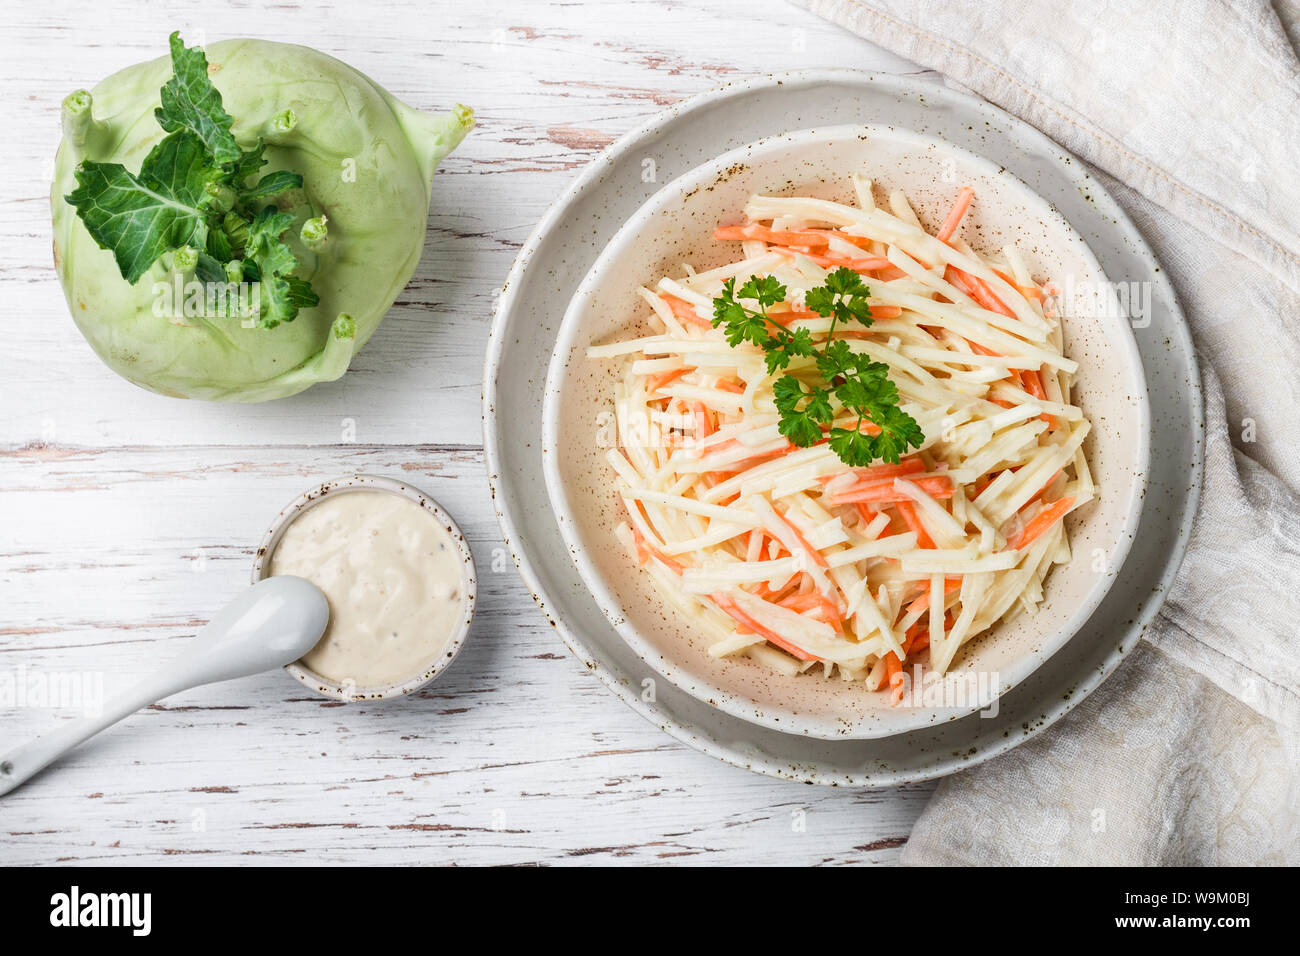 Vegetable salad of cabbage kohlrabi with carrots and Apple with dressing of natural yogurt or mayonnaise with parsley and spices. Vegetarian cuisine. Stock Photo